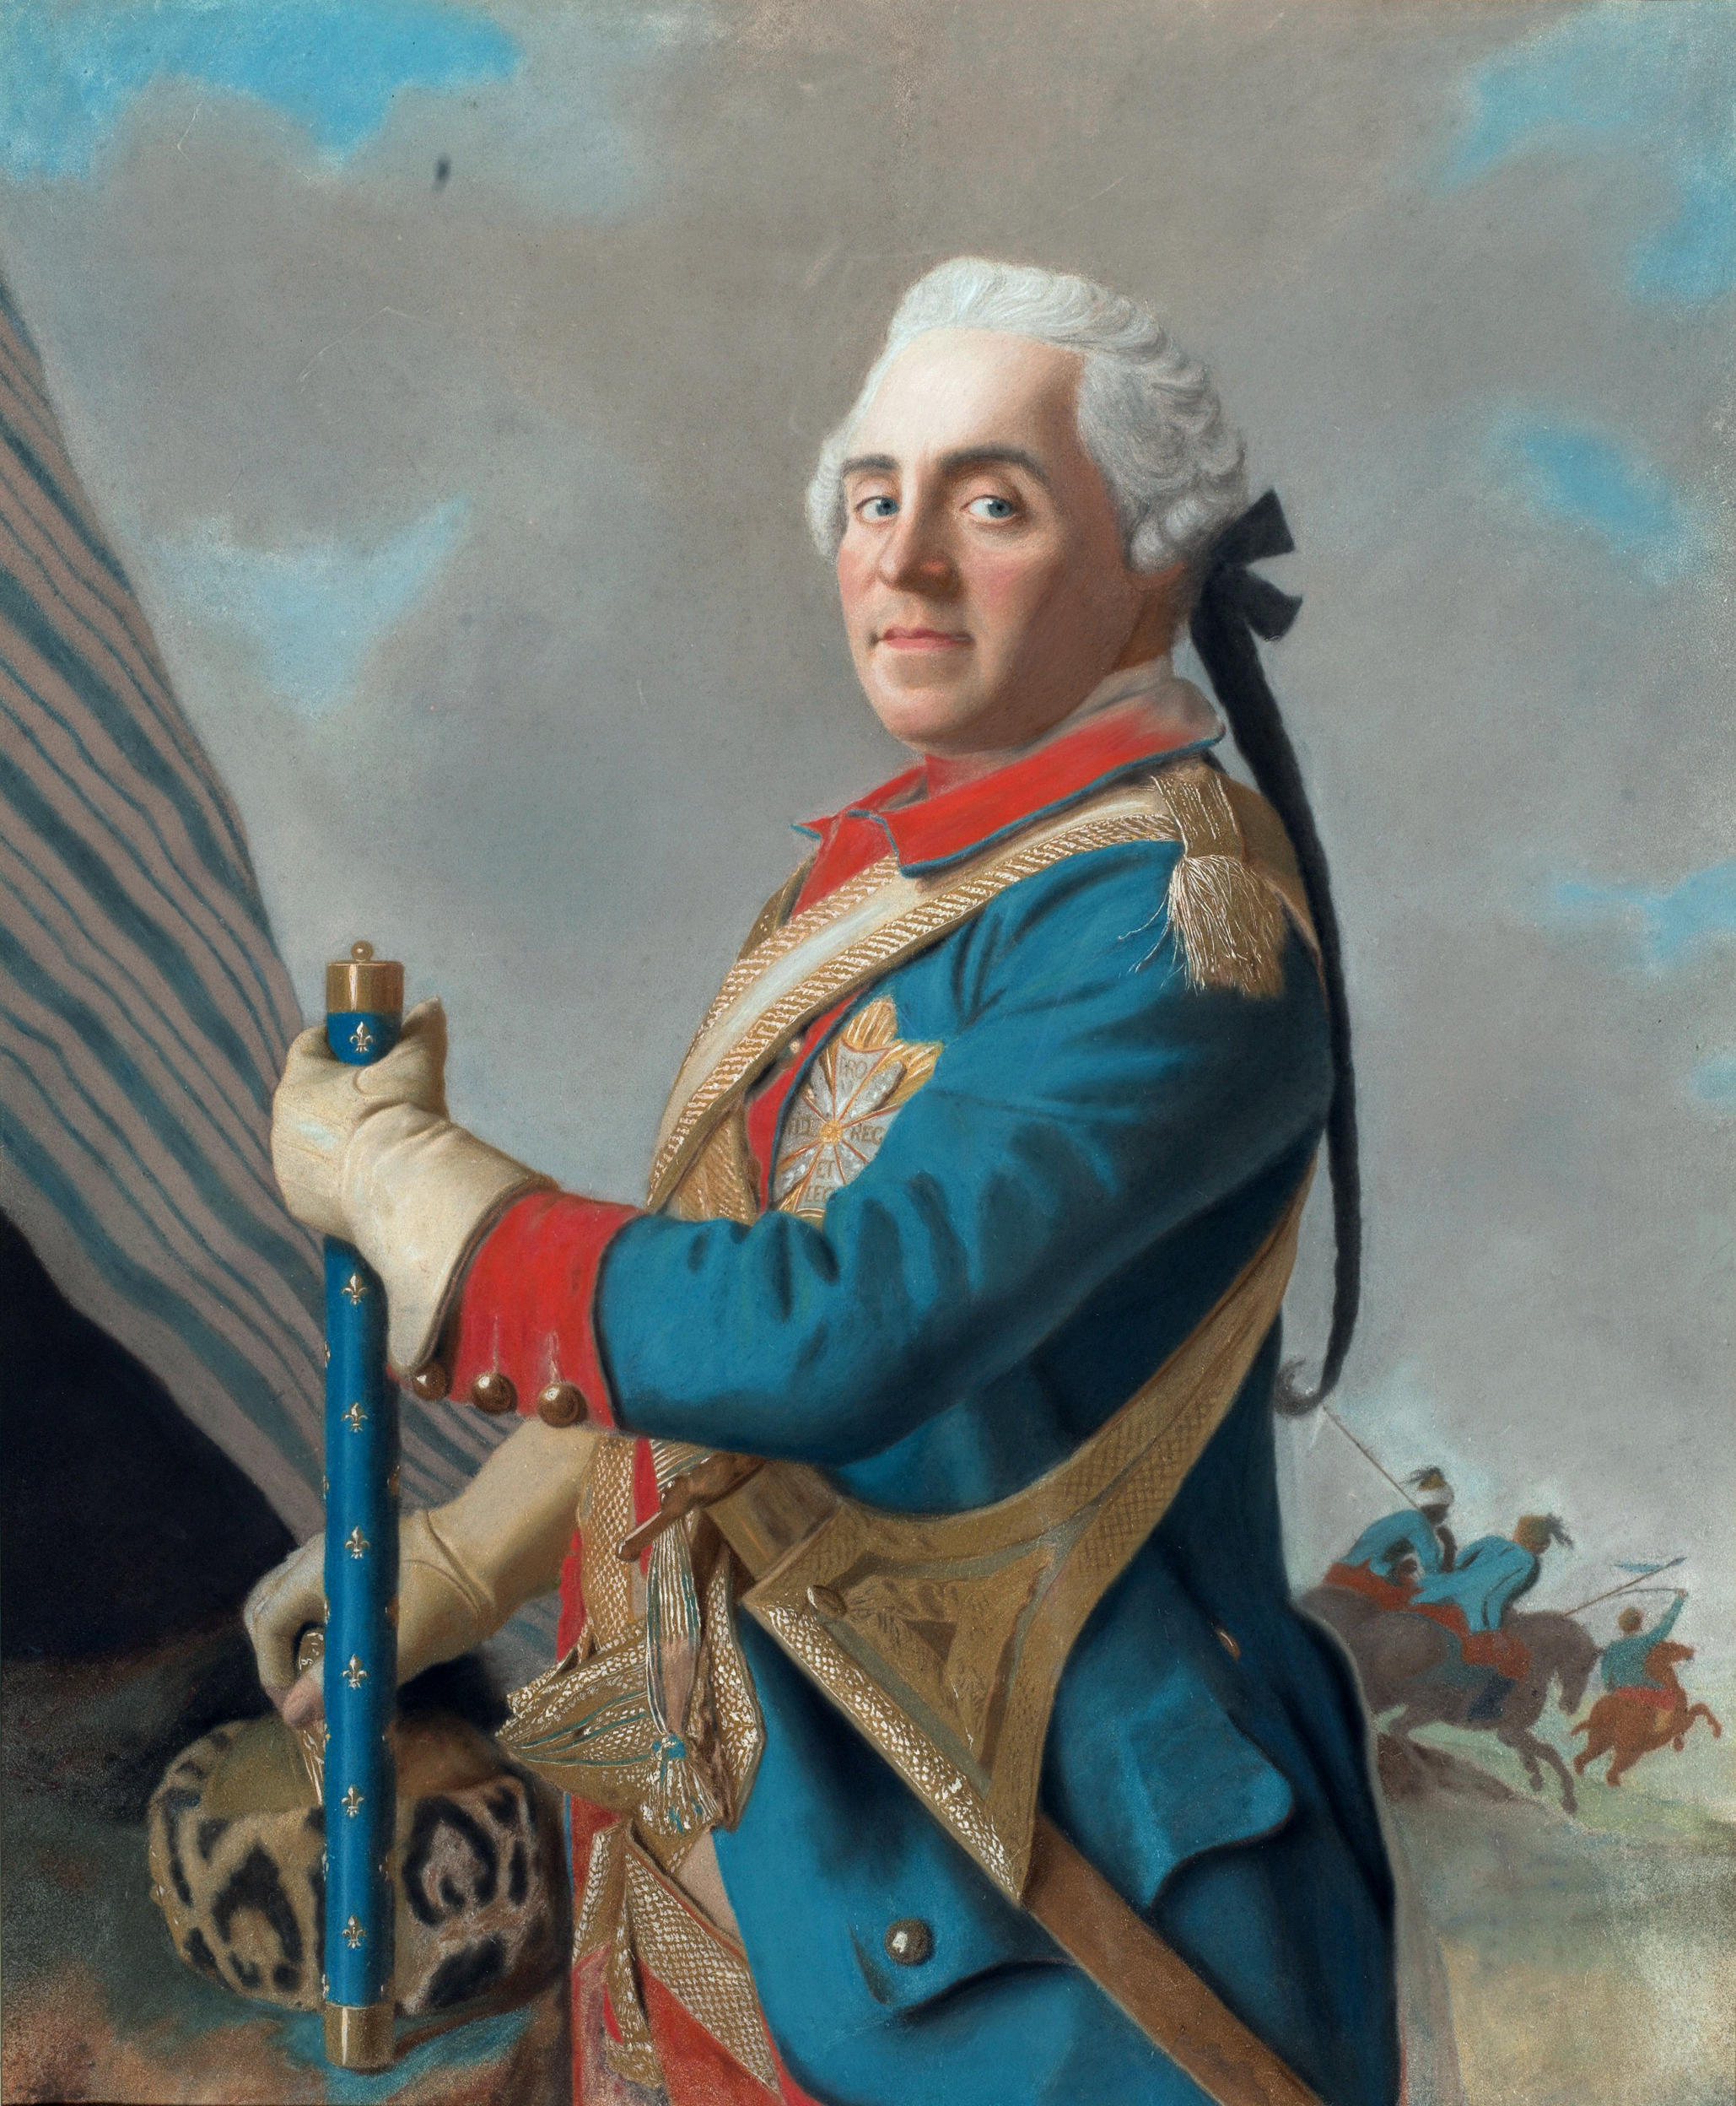 """Maurice of Saxe as a Marshal of France: """"Few orders are best, but those must be rigorously enforced."""""""